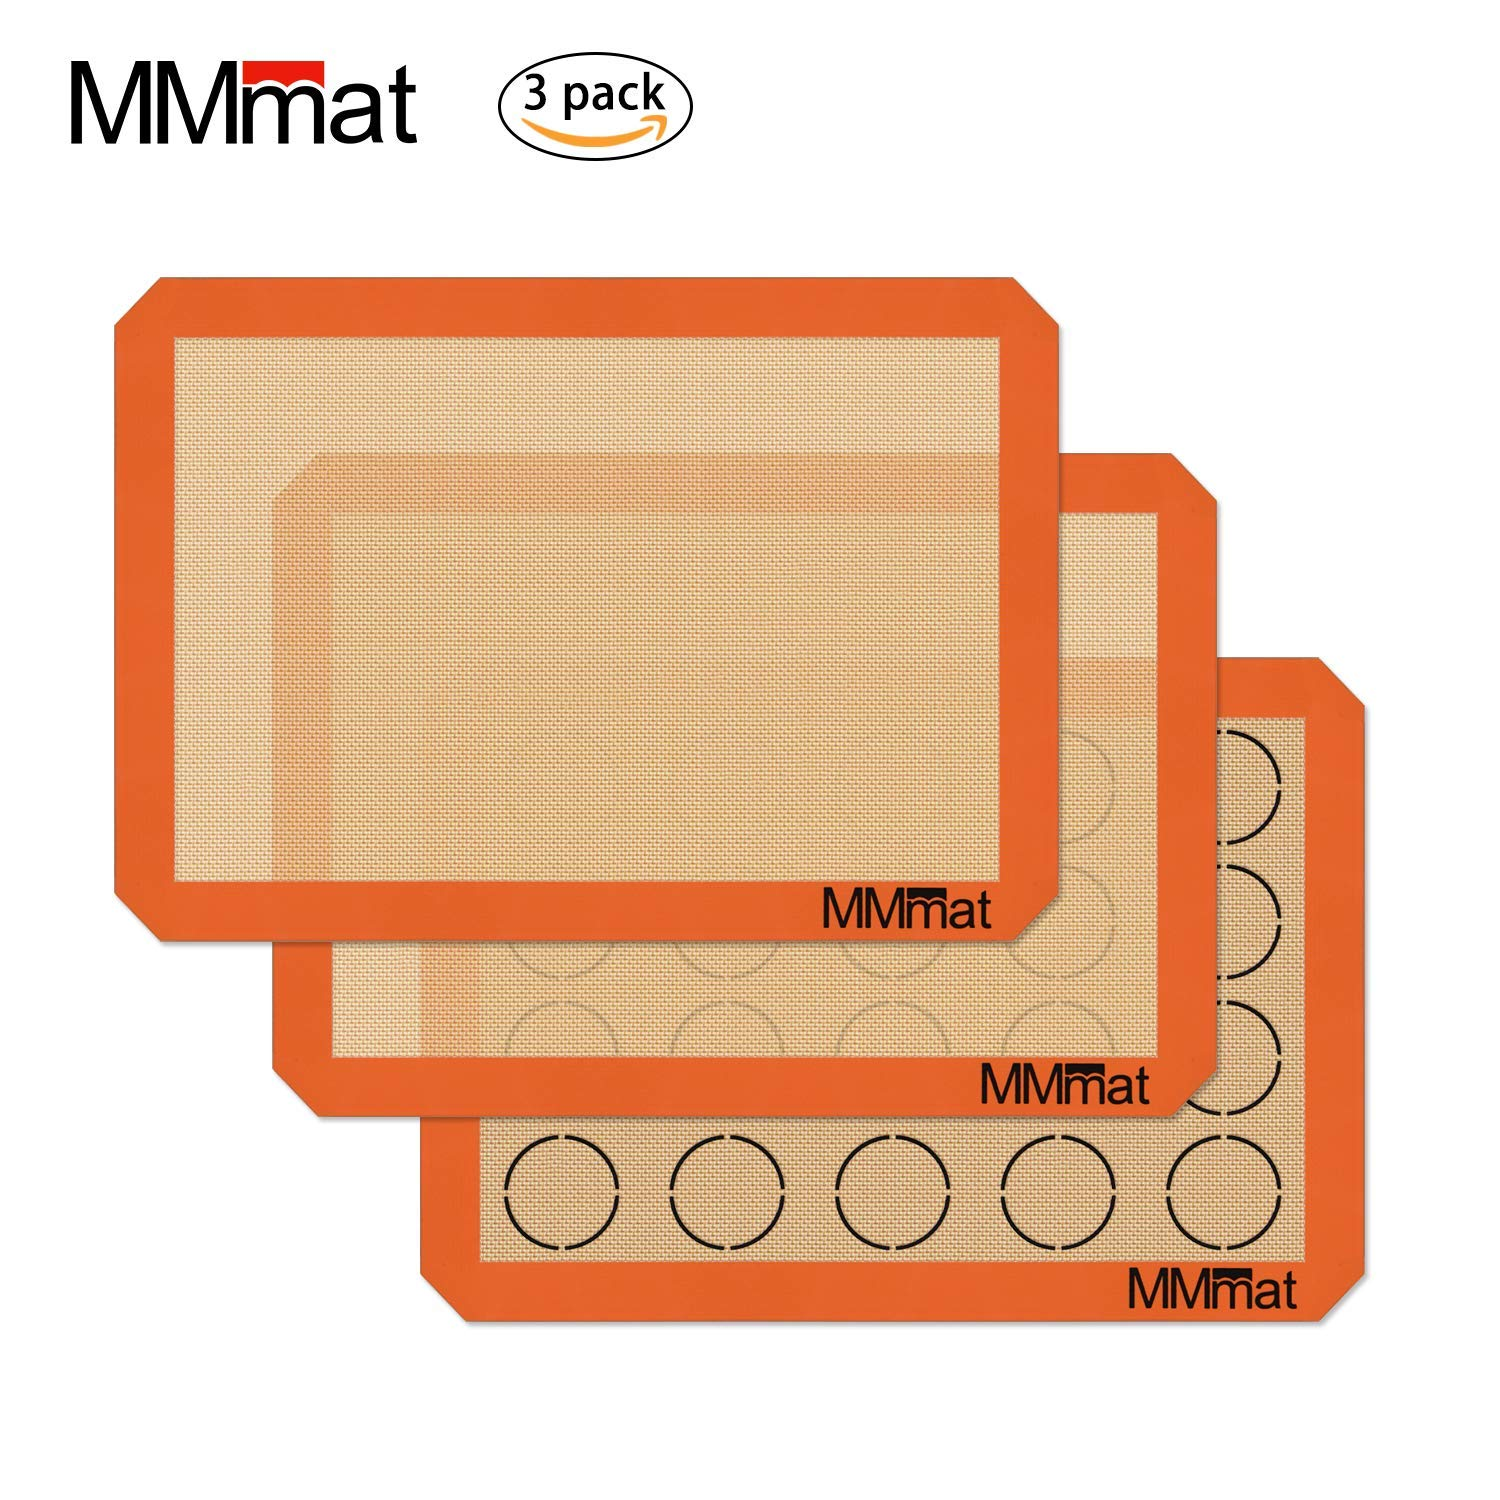 MMmat Silicone Baking Mat - German Silicone Half Sheet Size - 100% Non-Stick Professional Quality - 3 Pack